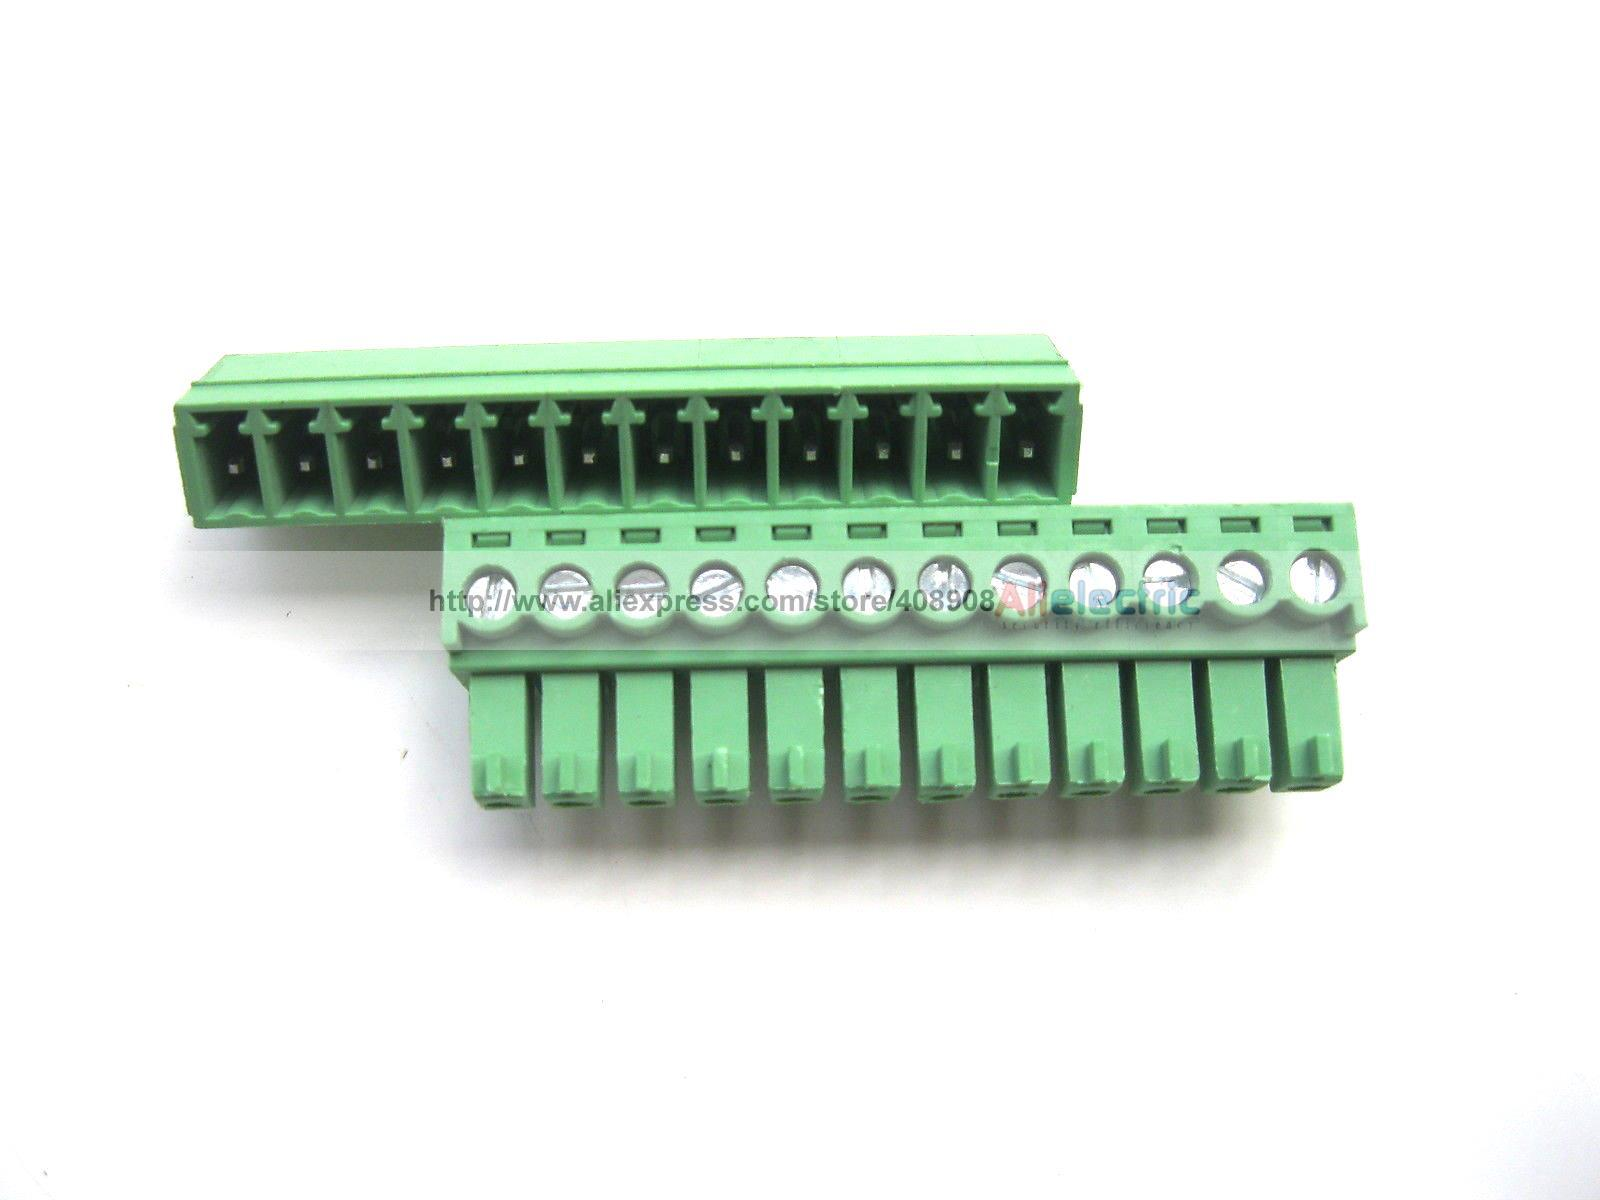 30 Pcs Screw Terminal Block Connector 3.81mm 12 Pin Green Pluggable Type